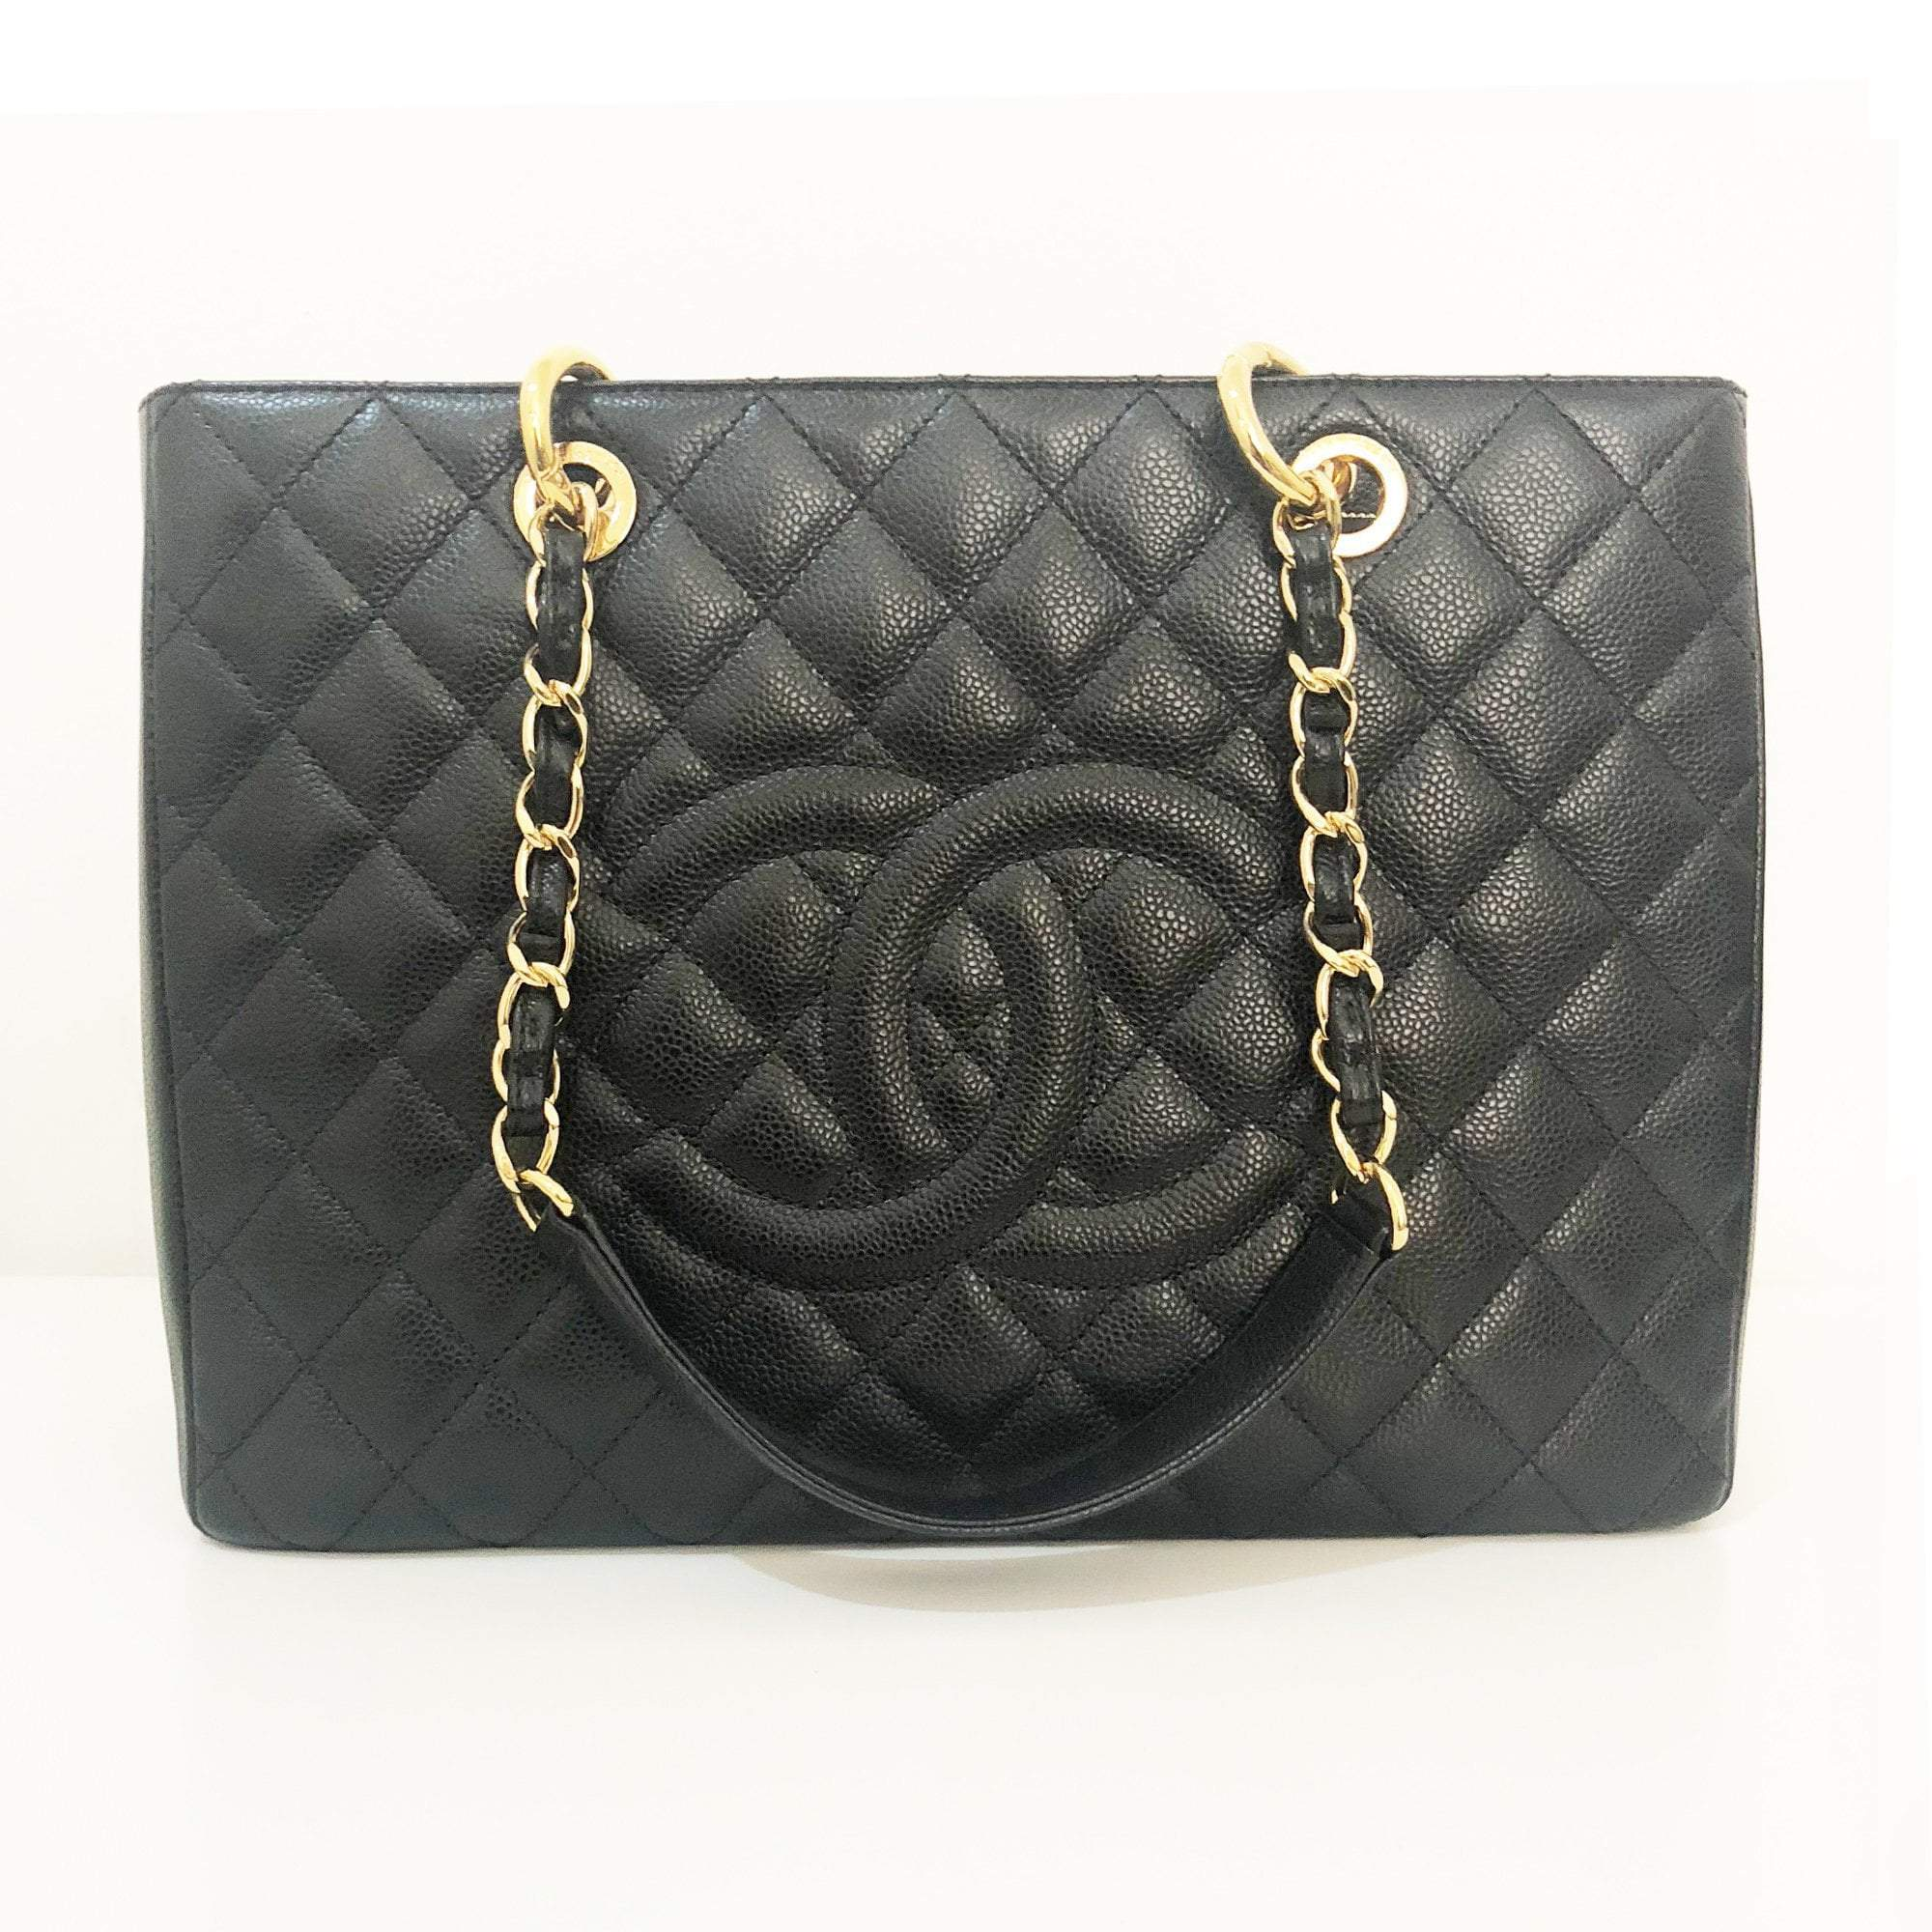 Chanel Black Caviar Classic Grand Shopper Tote GST Bag